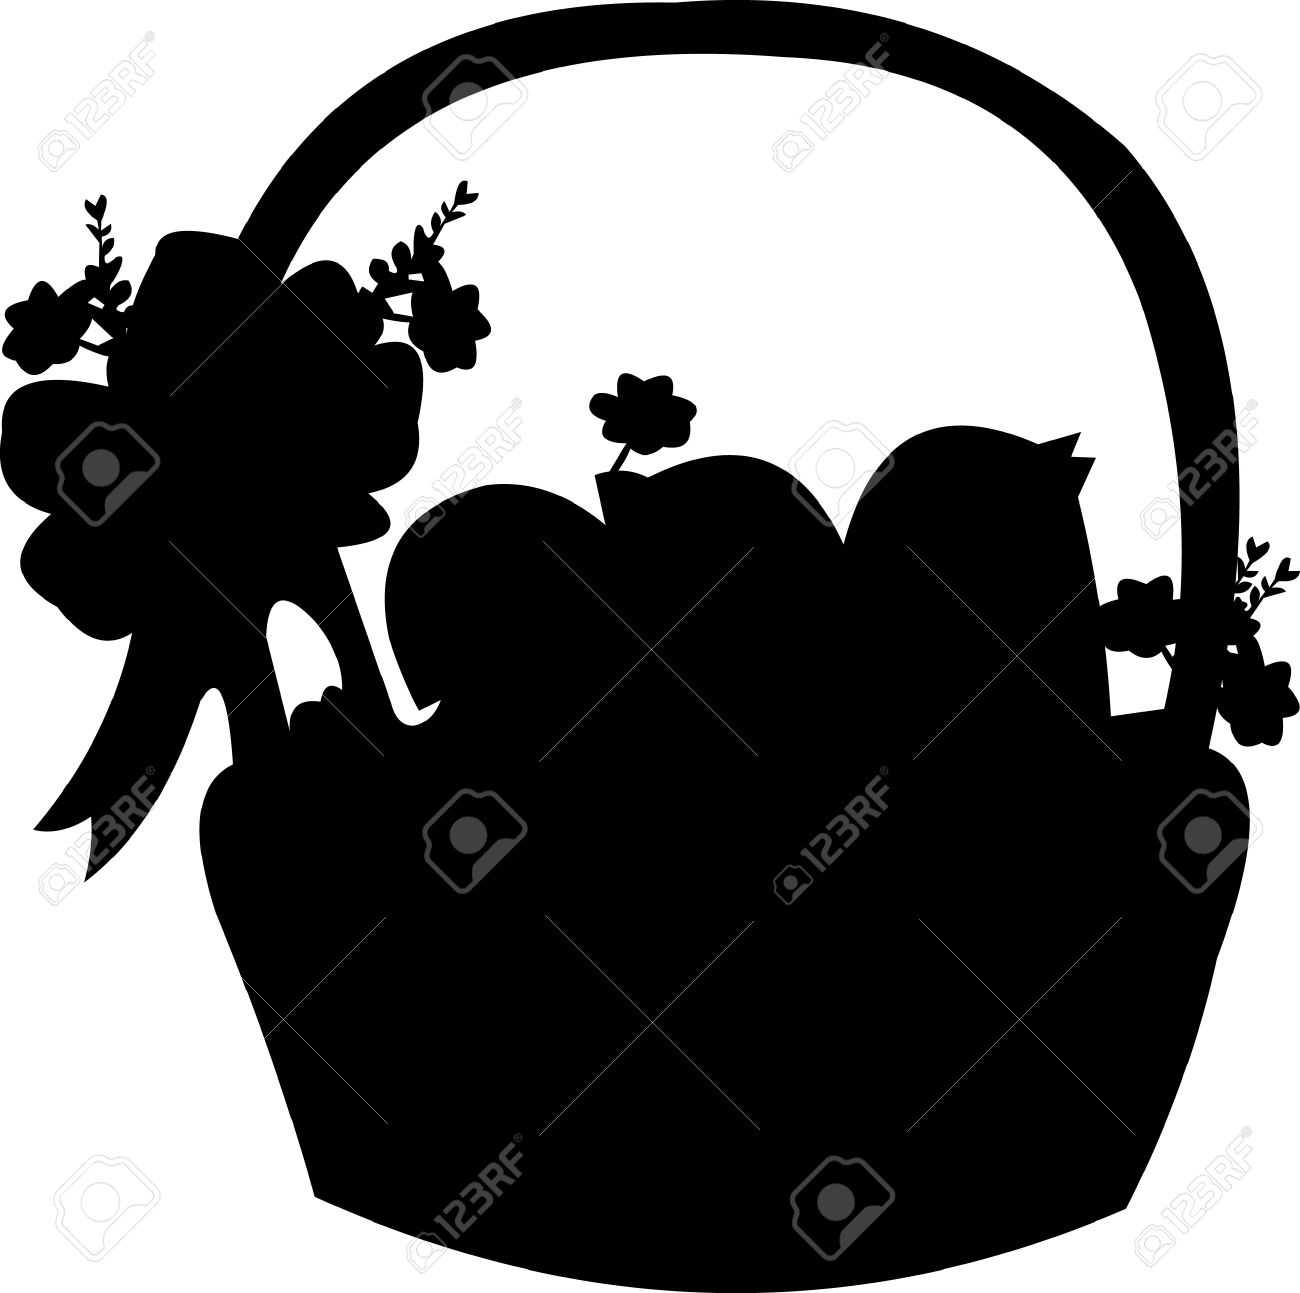 Easter basket silhouette clipart png royalty free library Easter basket silhouette clipart - ClipartFest png royalty free library